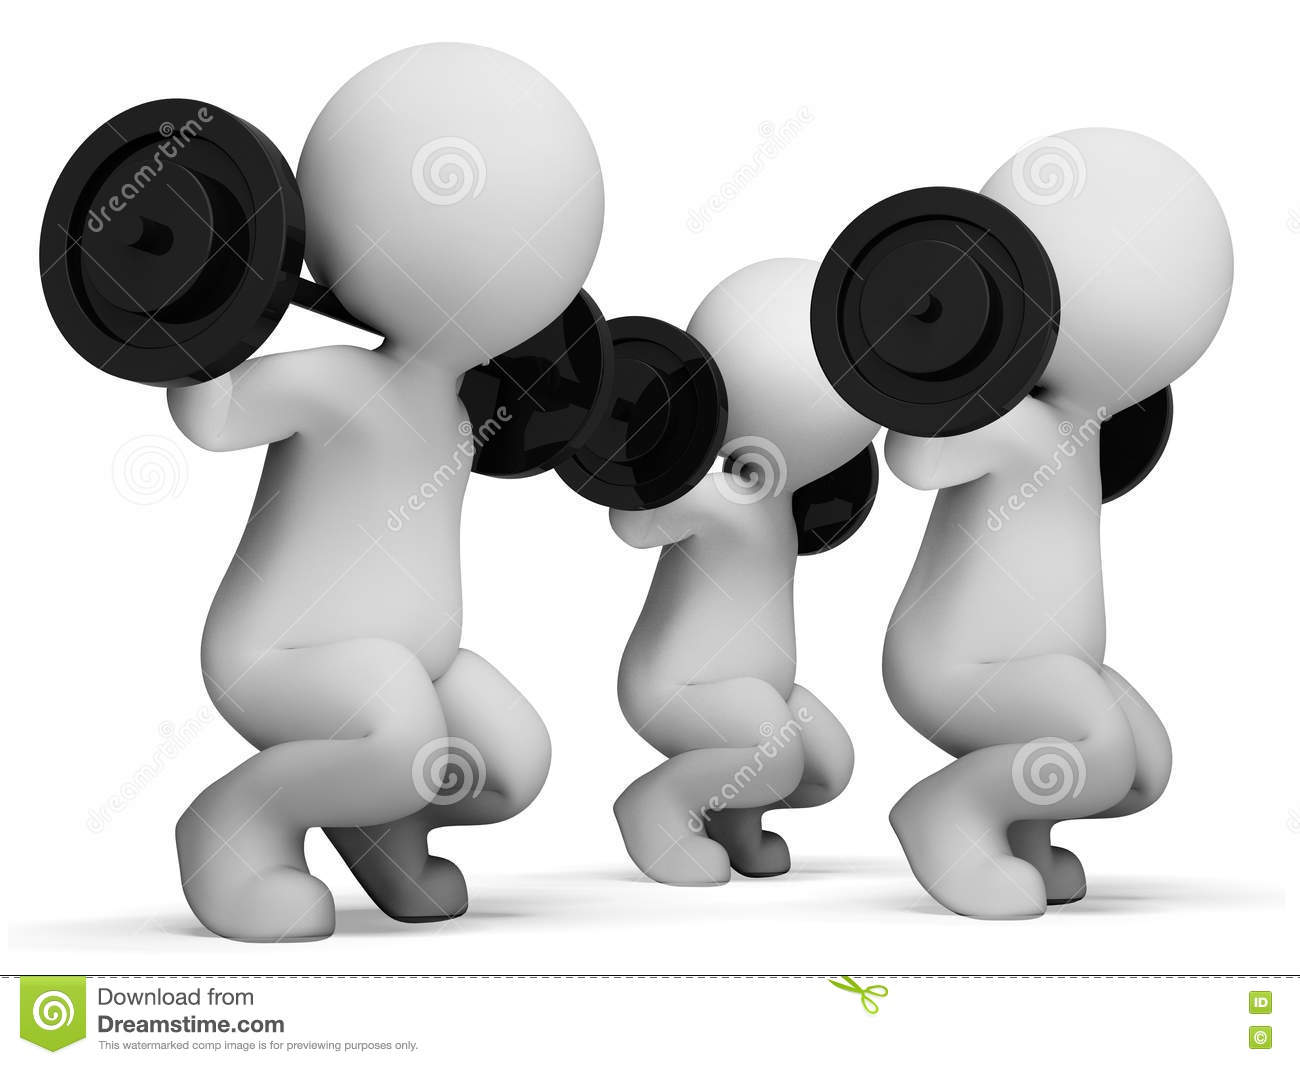 weight lifting shows fitness center and characters 3d rendering